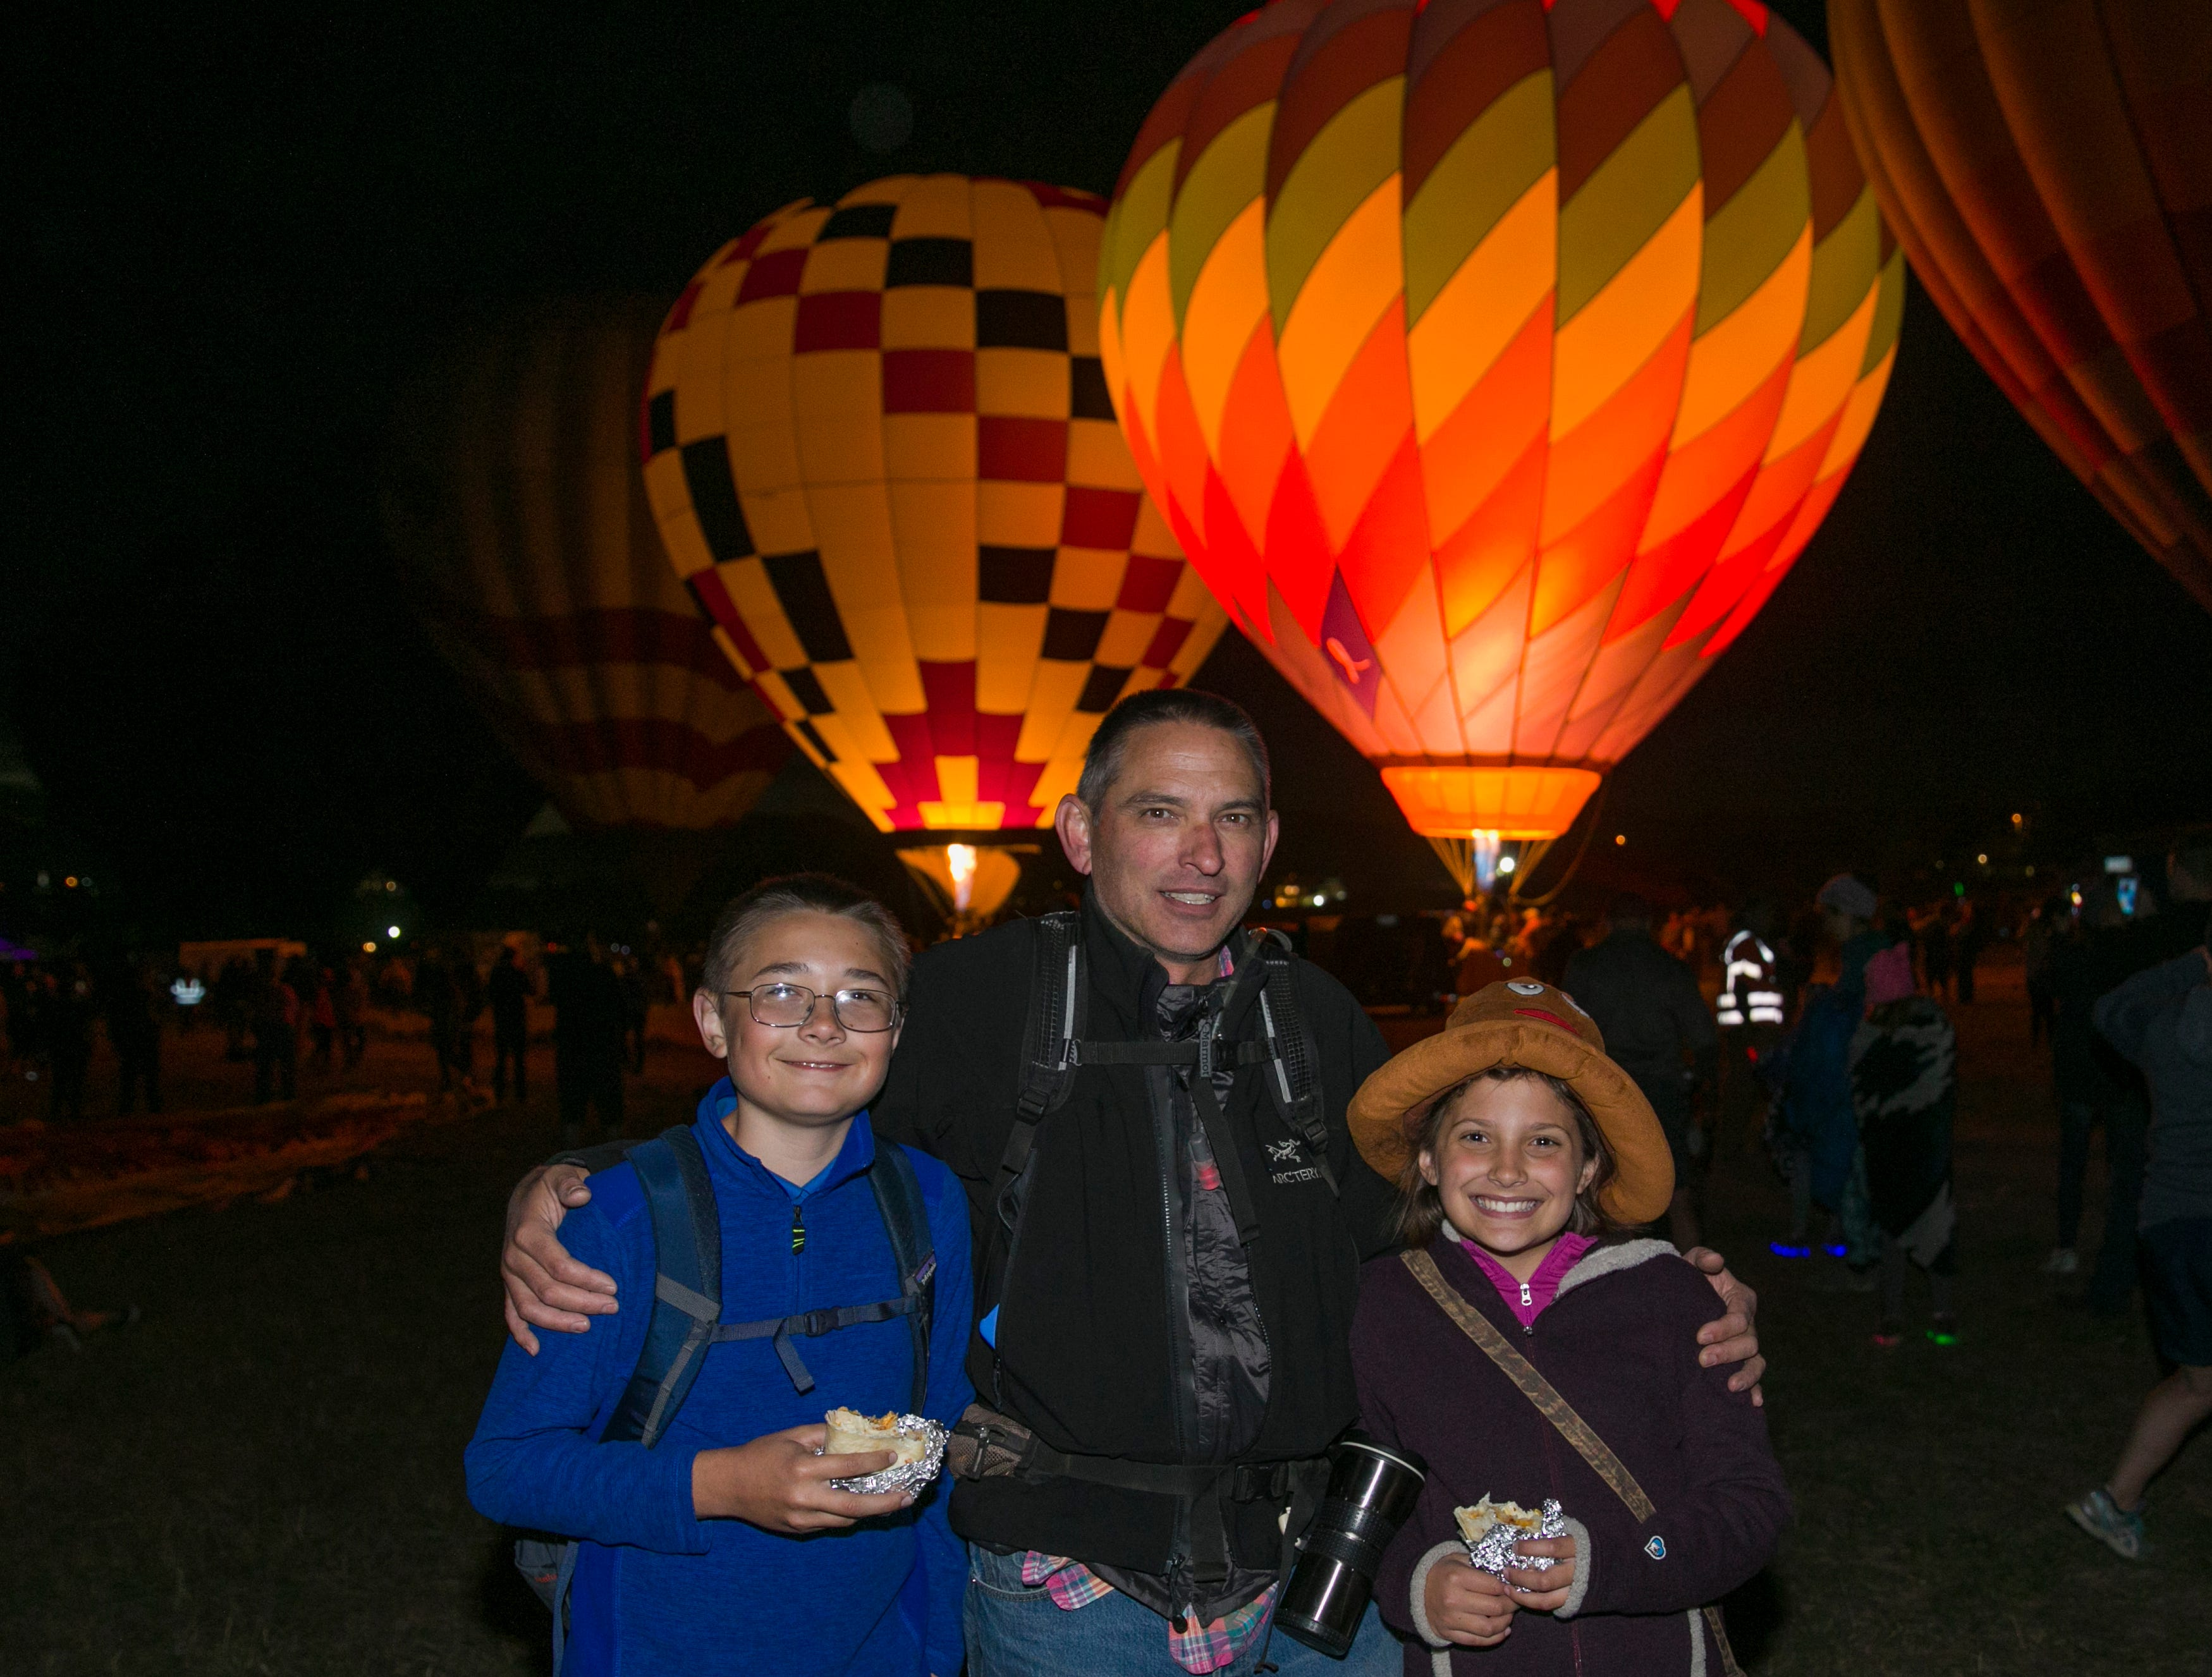 The Flanigan family during dawn patrol at the Great Reno Balloon Races held on Saturday, Sept. 8, 2018.